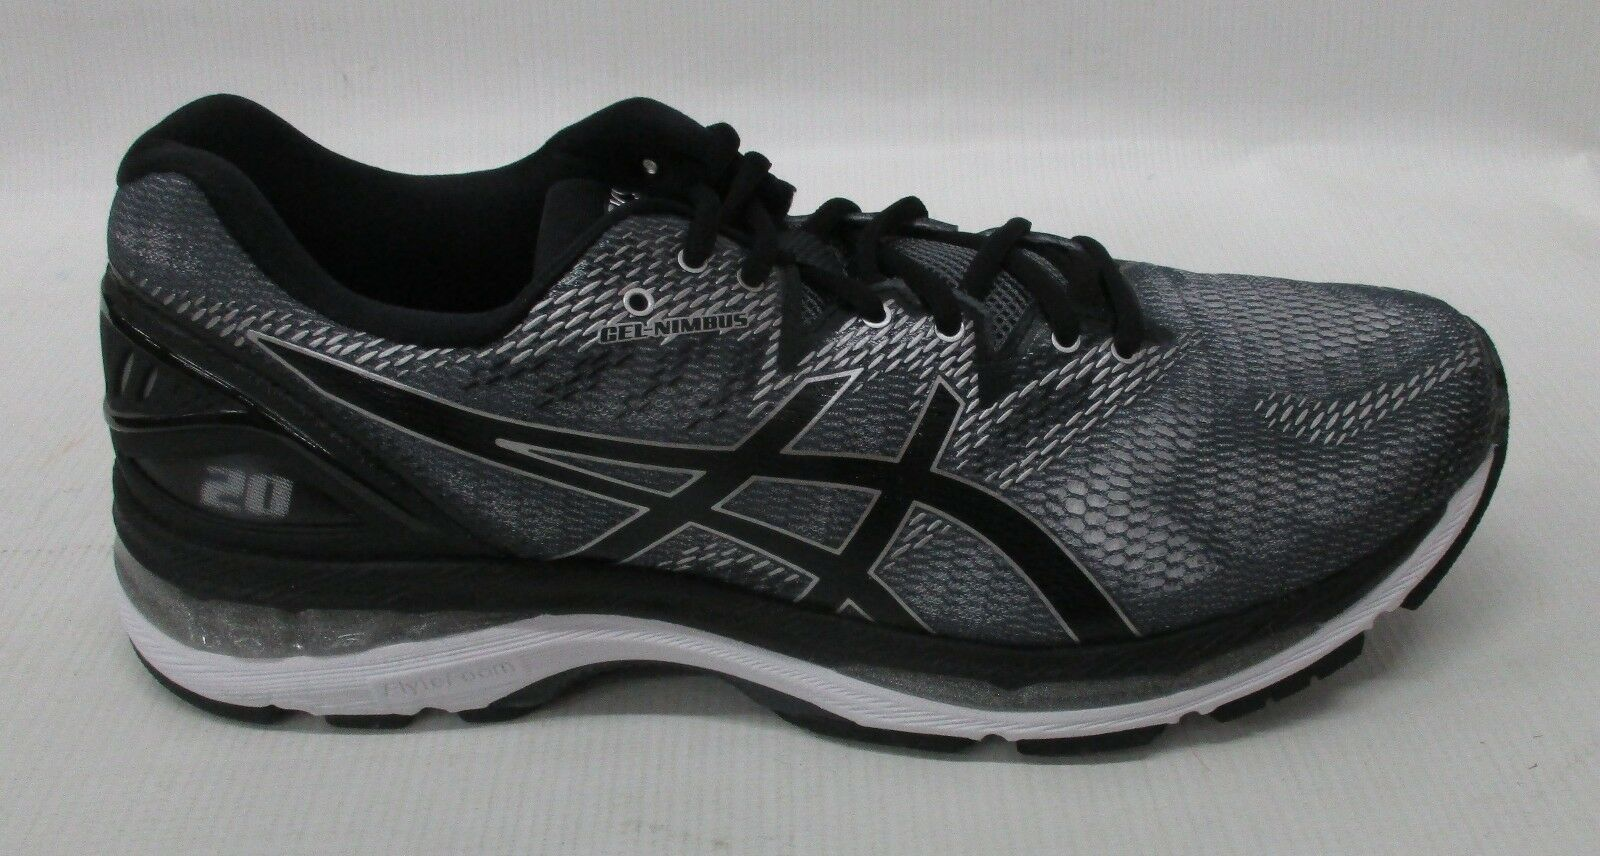 Asics Mens Gel Nimbus 20 Running Shoes T800N 9790 Carbon/Black/Silver Size 10.5